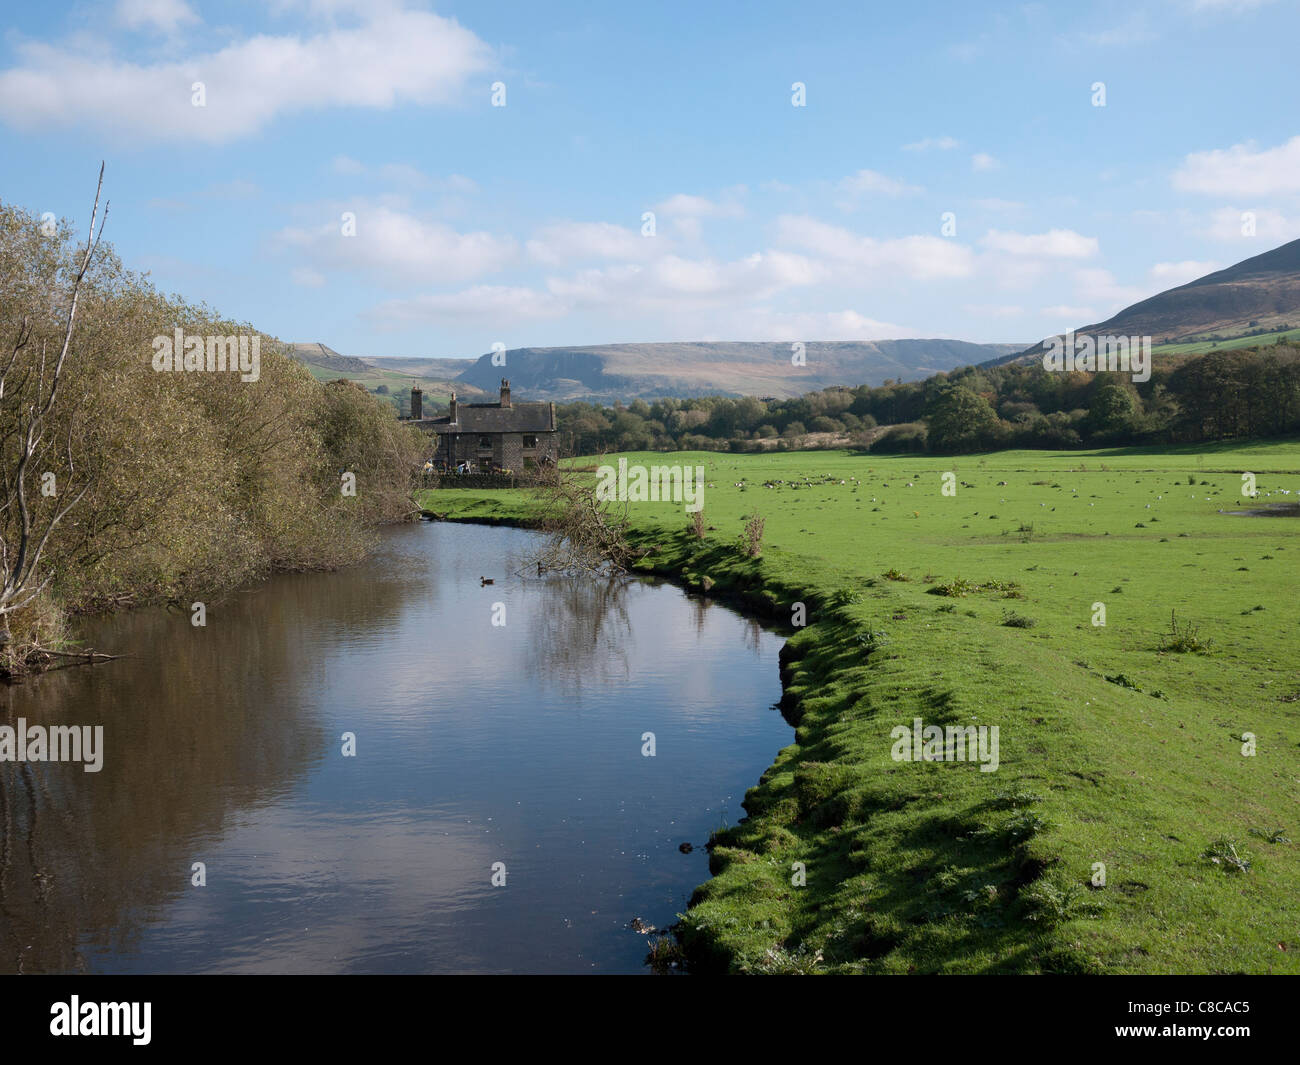 View towards Greenfield and Moors. Oldham, Lancashire, England, UK. - Stock Image